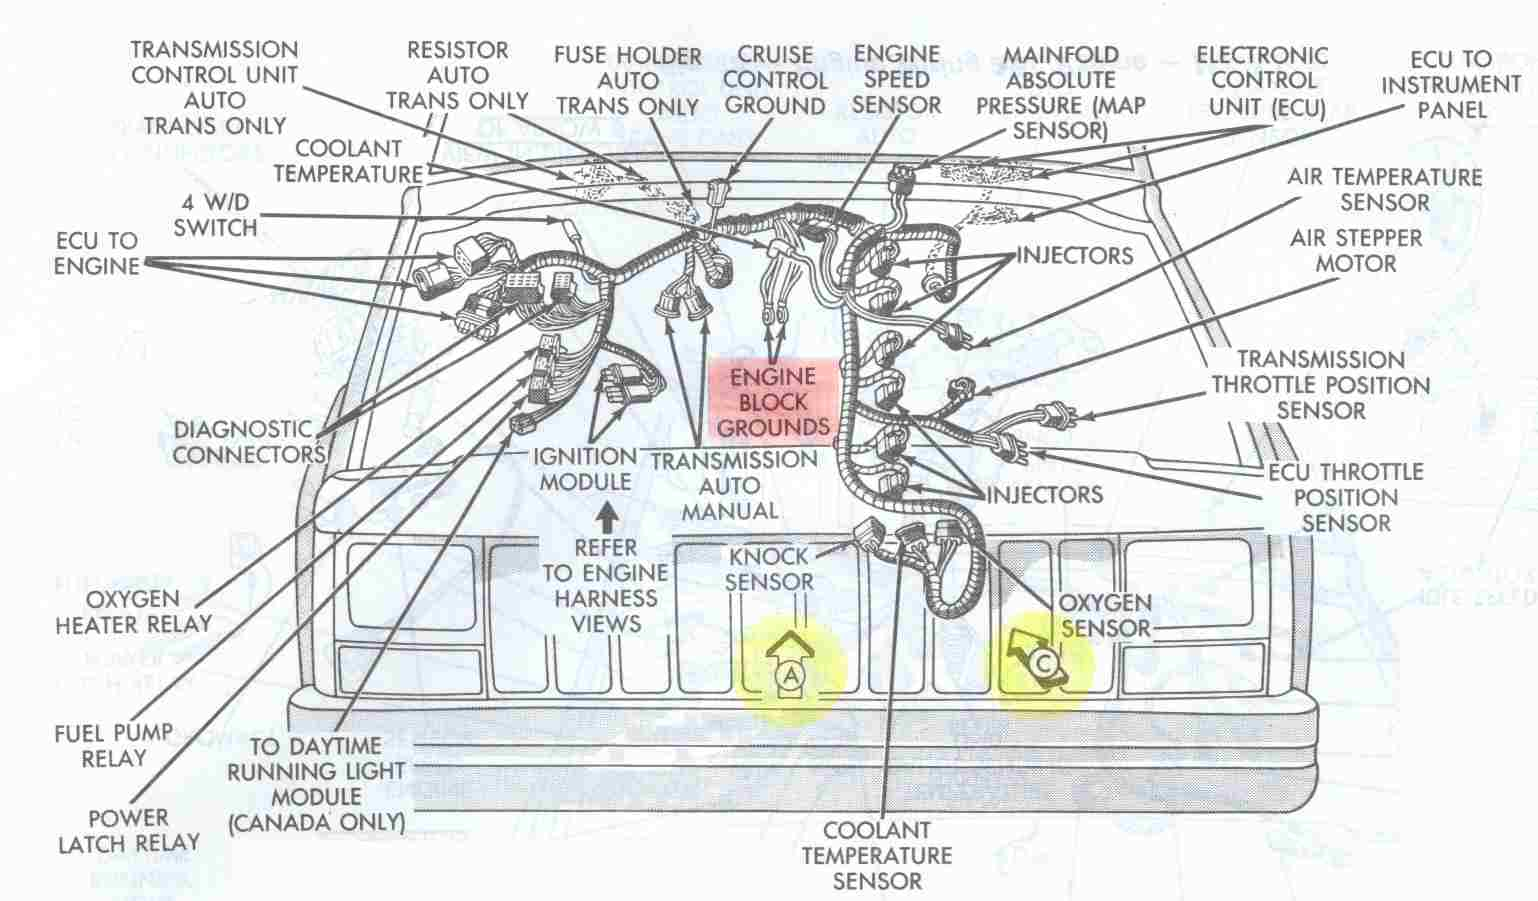 Electrical_Engine_Ground_Points_Overview jeep cherokee electrical diagnosing erratic behavior of engine 2002 jeep grand cherokee wiring harness at mifinder.co